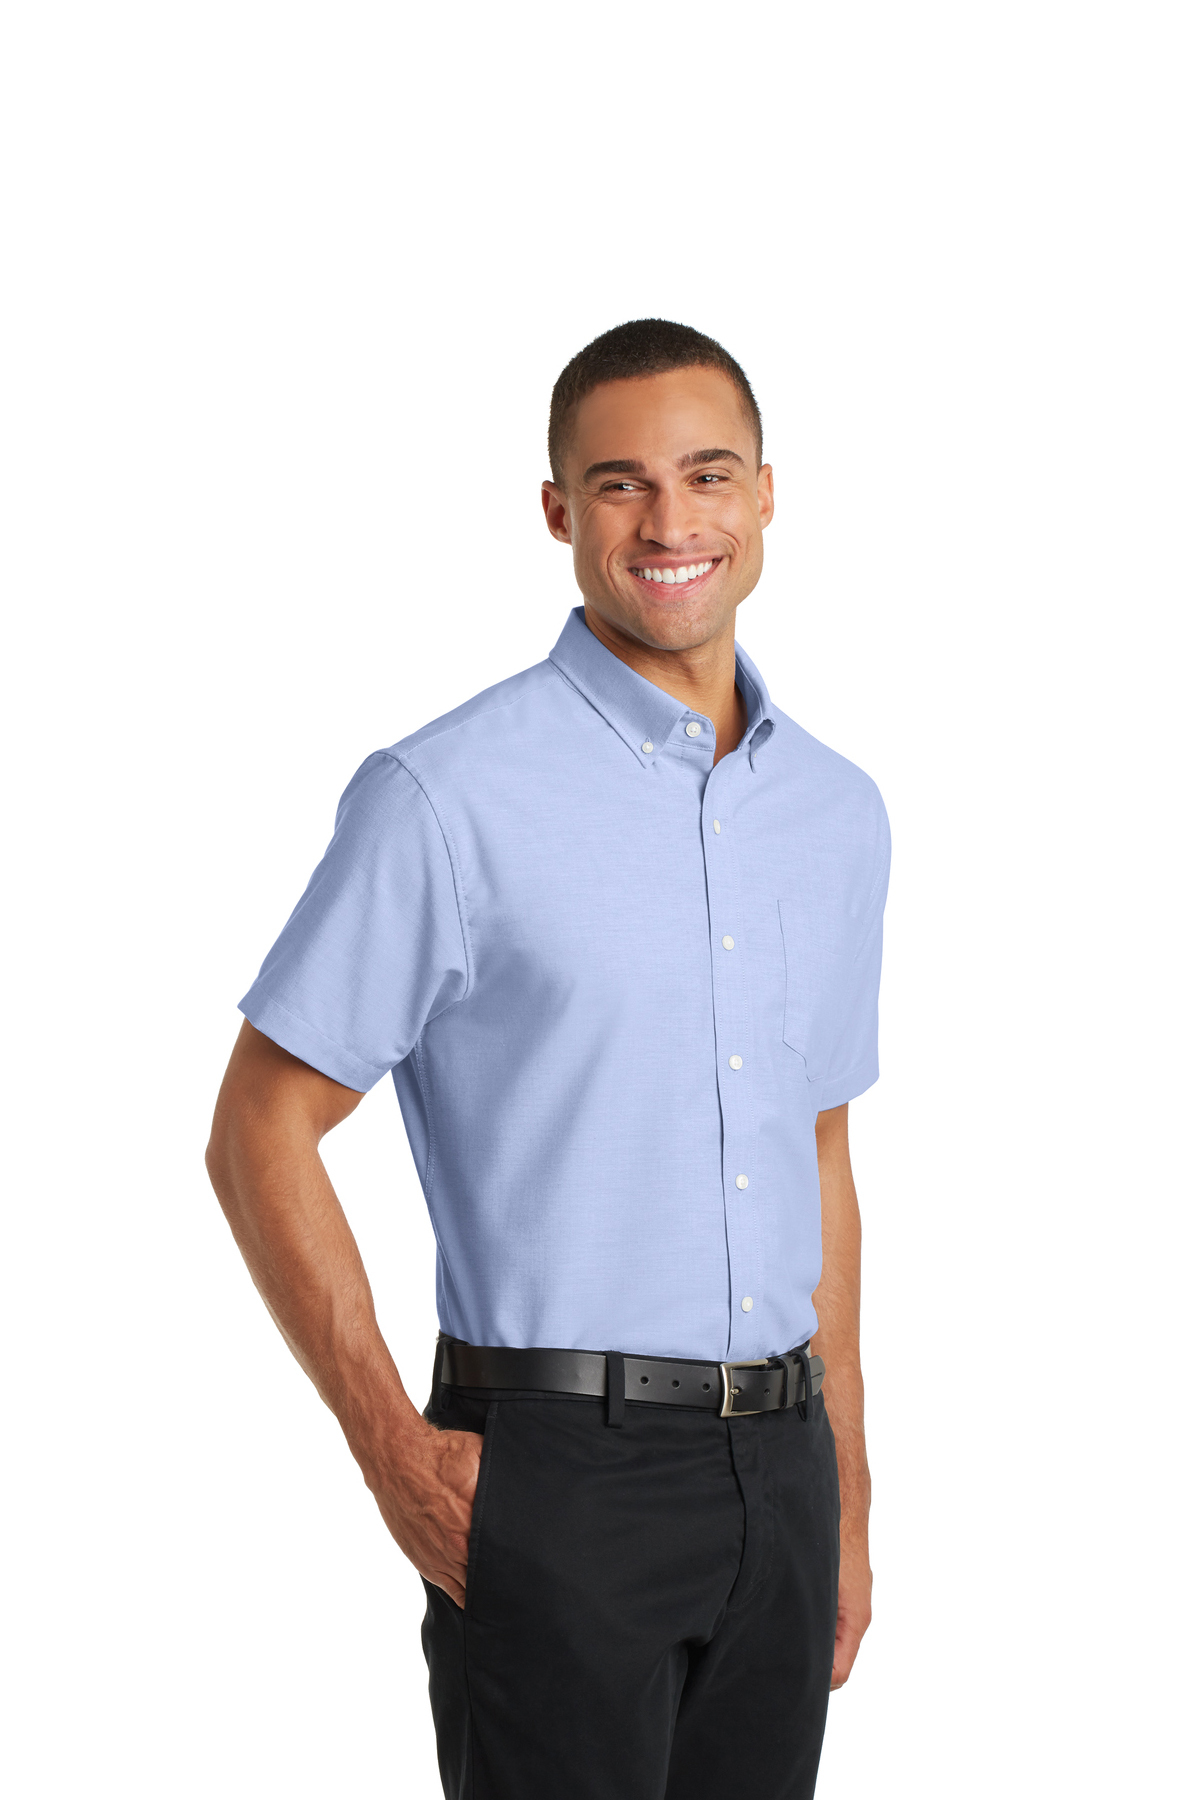 bb15b37de61e10 ... Port Authority® Short Sleeve SuperPro™ Oxford Shirt. A maximum of 8  logos have been uploaded. Please remove a logo from My Logos to continue